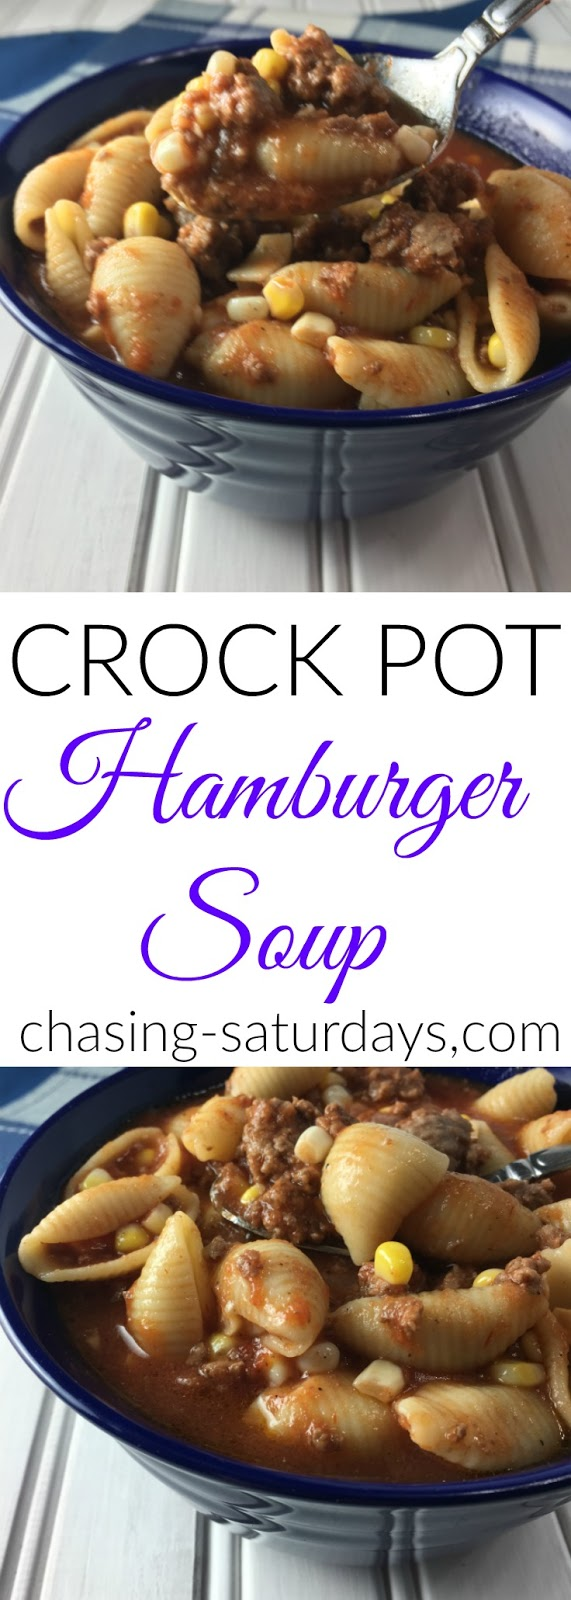 how to cook hamburger in a crock pot